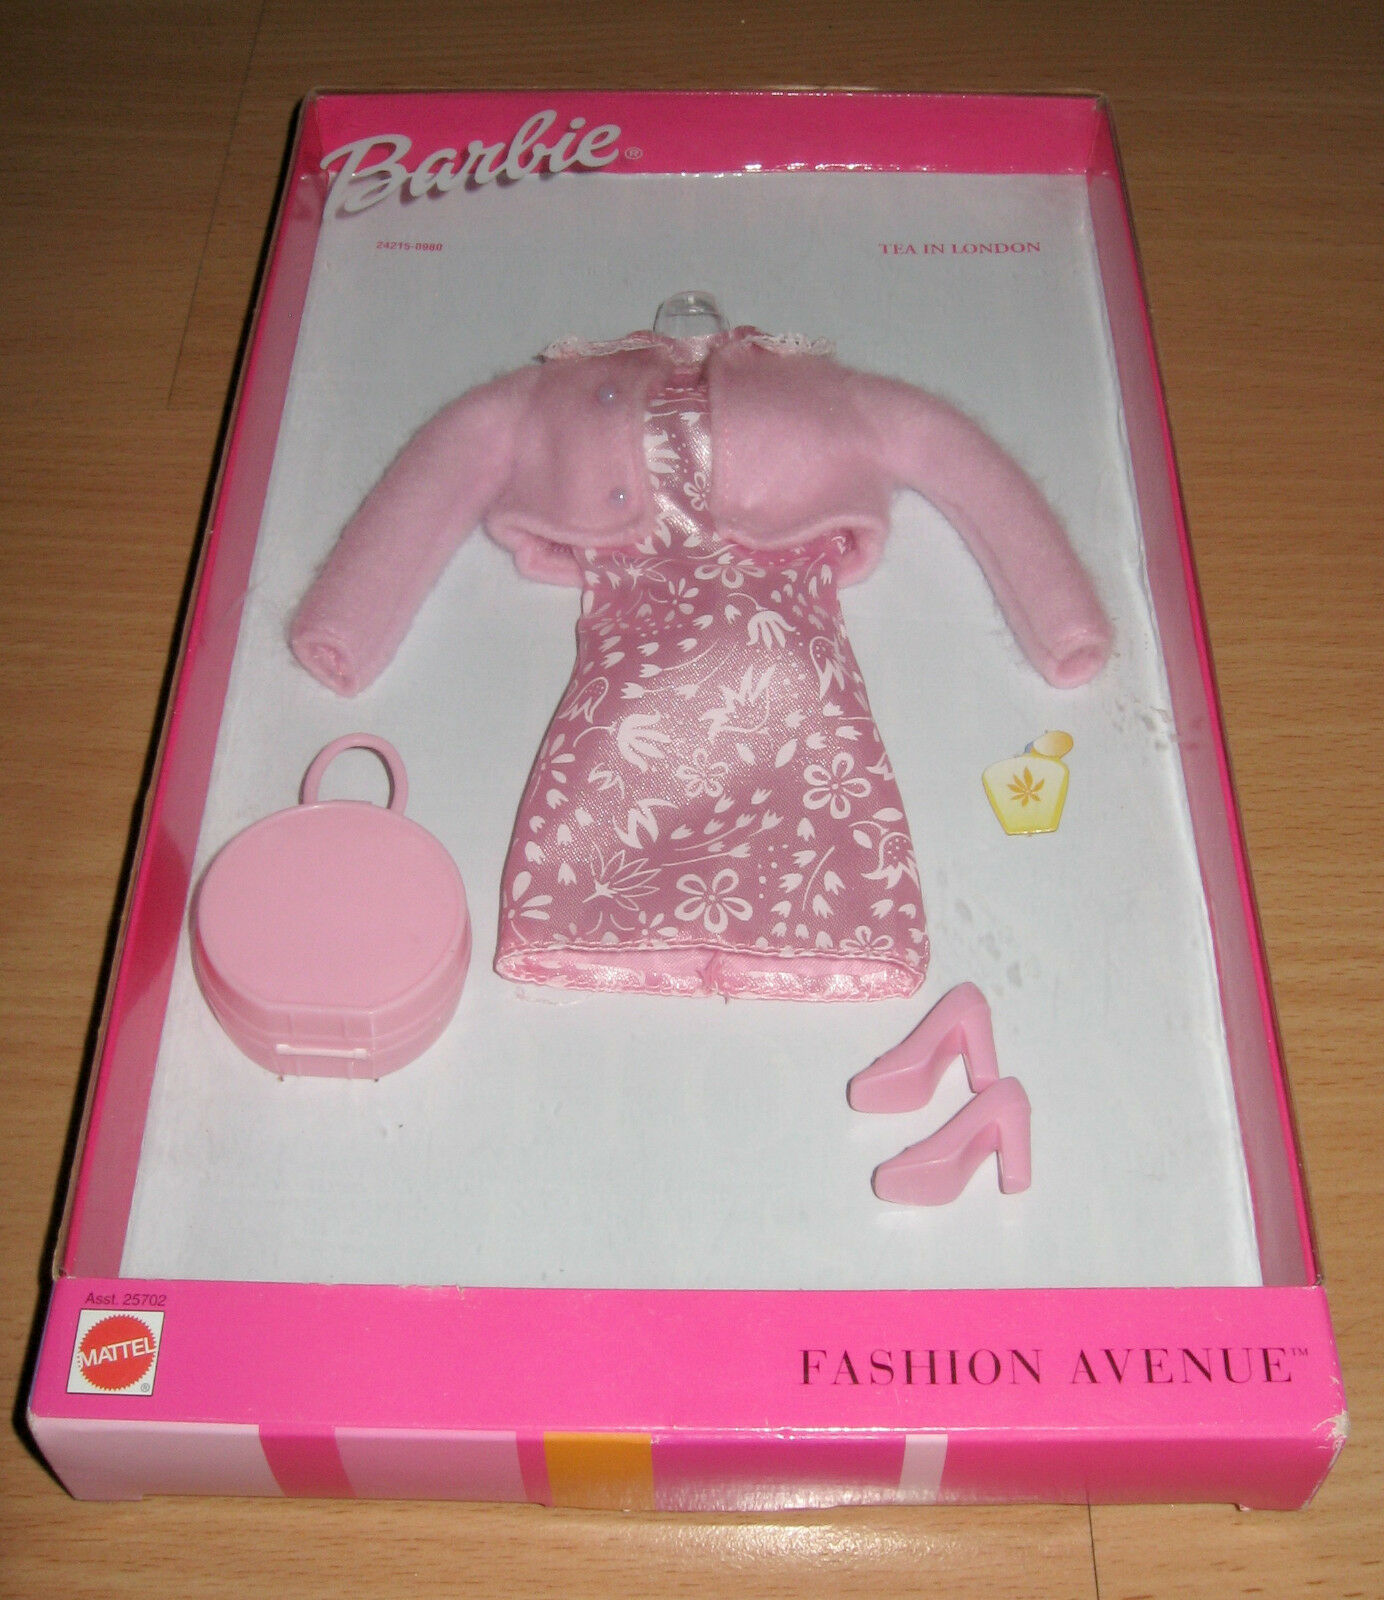 NRFB Barbie Modischer Avenue Tee in London Rosa Outfit 1999